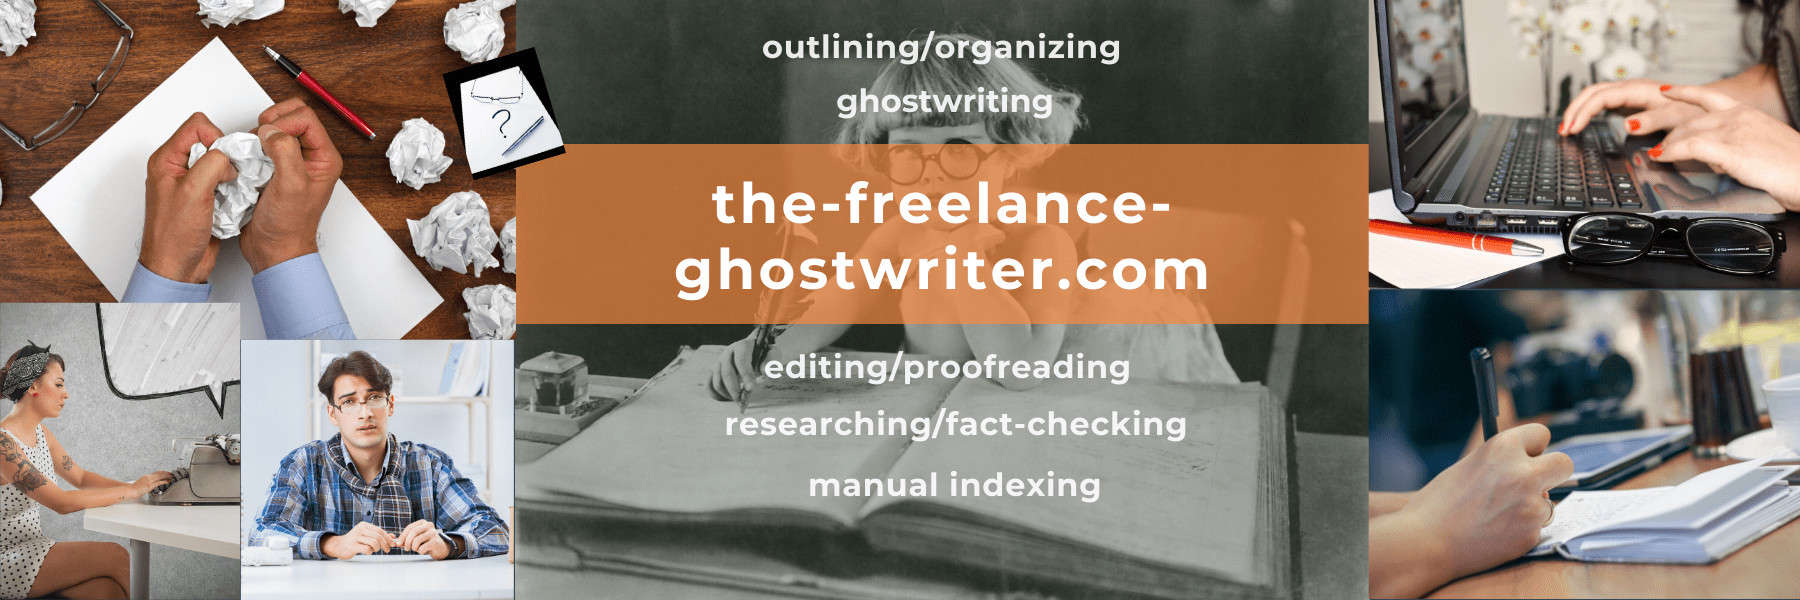 Thank you for visiting the-freelance-ghostwriter, a division of the-freelance-editor; we also help with outlining/organizing, editing/proofreading, researching/fact-checking, and manual indexing.